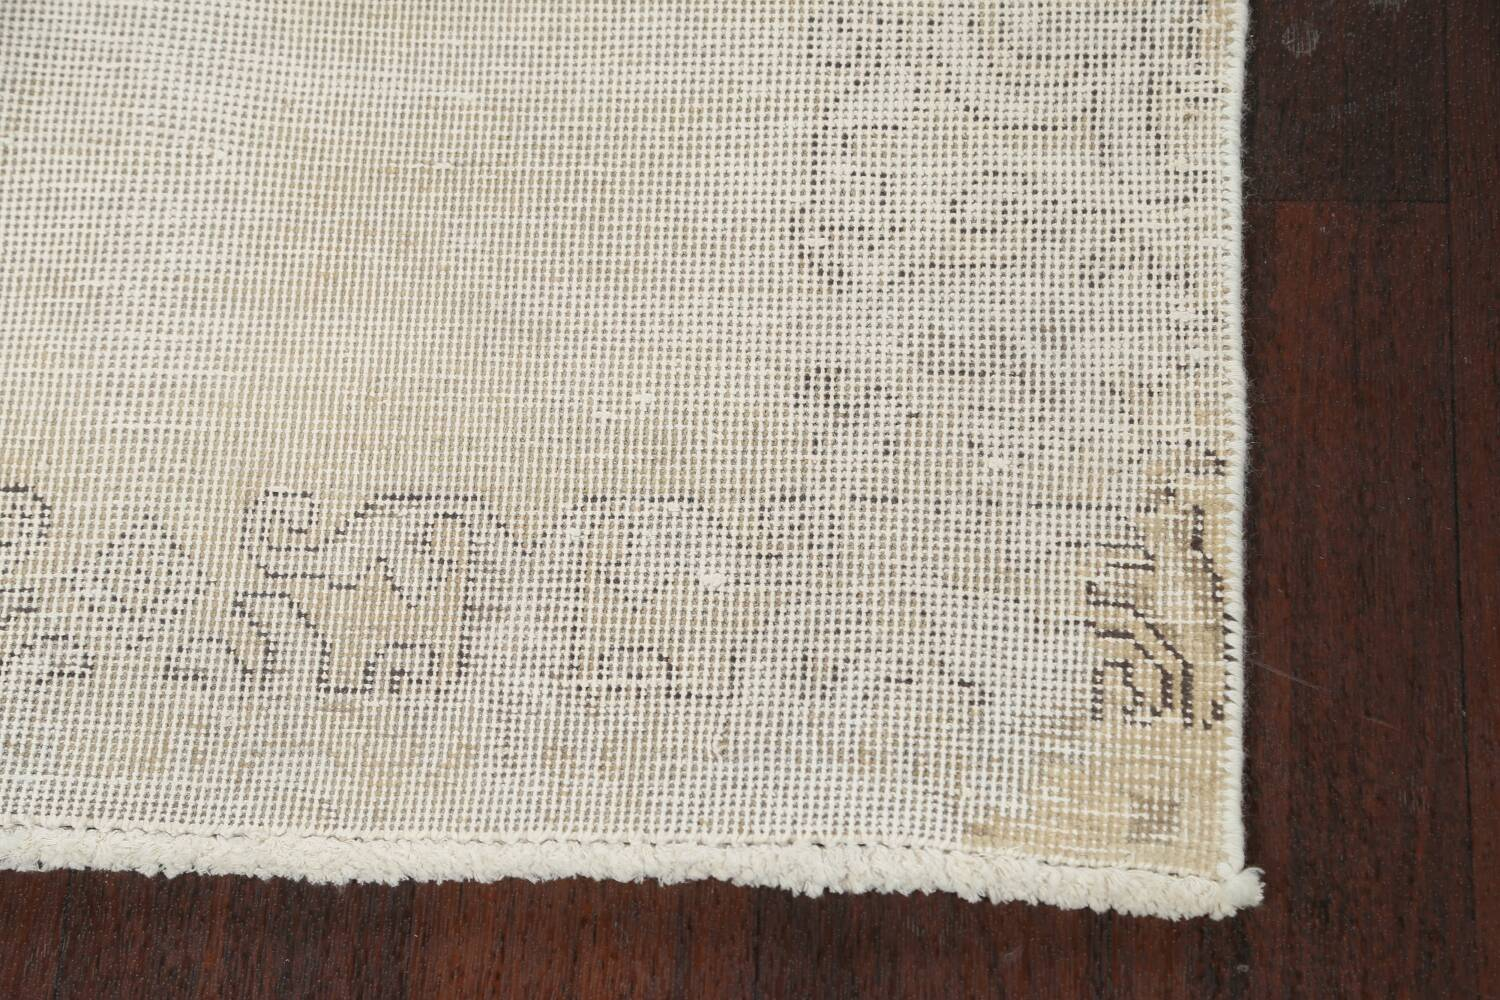 Muted Distressed Tabriz Persian Runner Rug 3x12 image 5